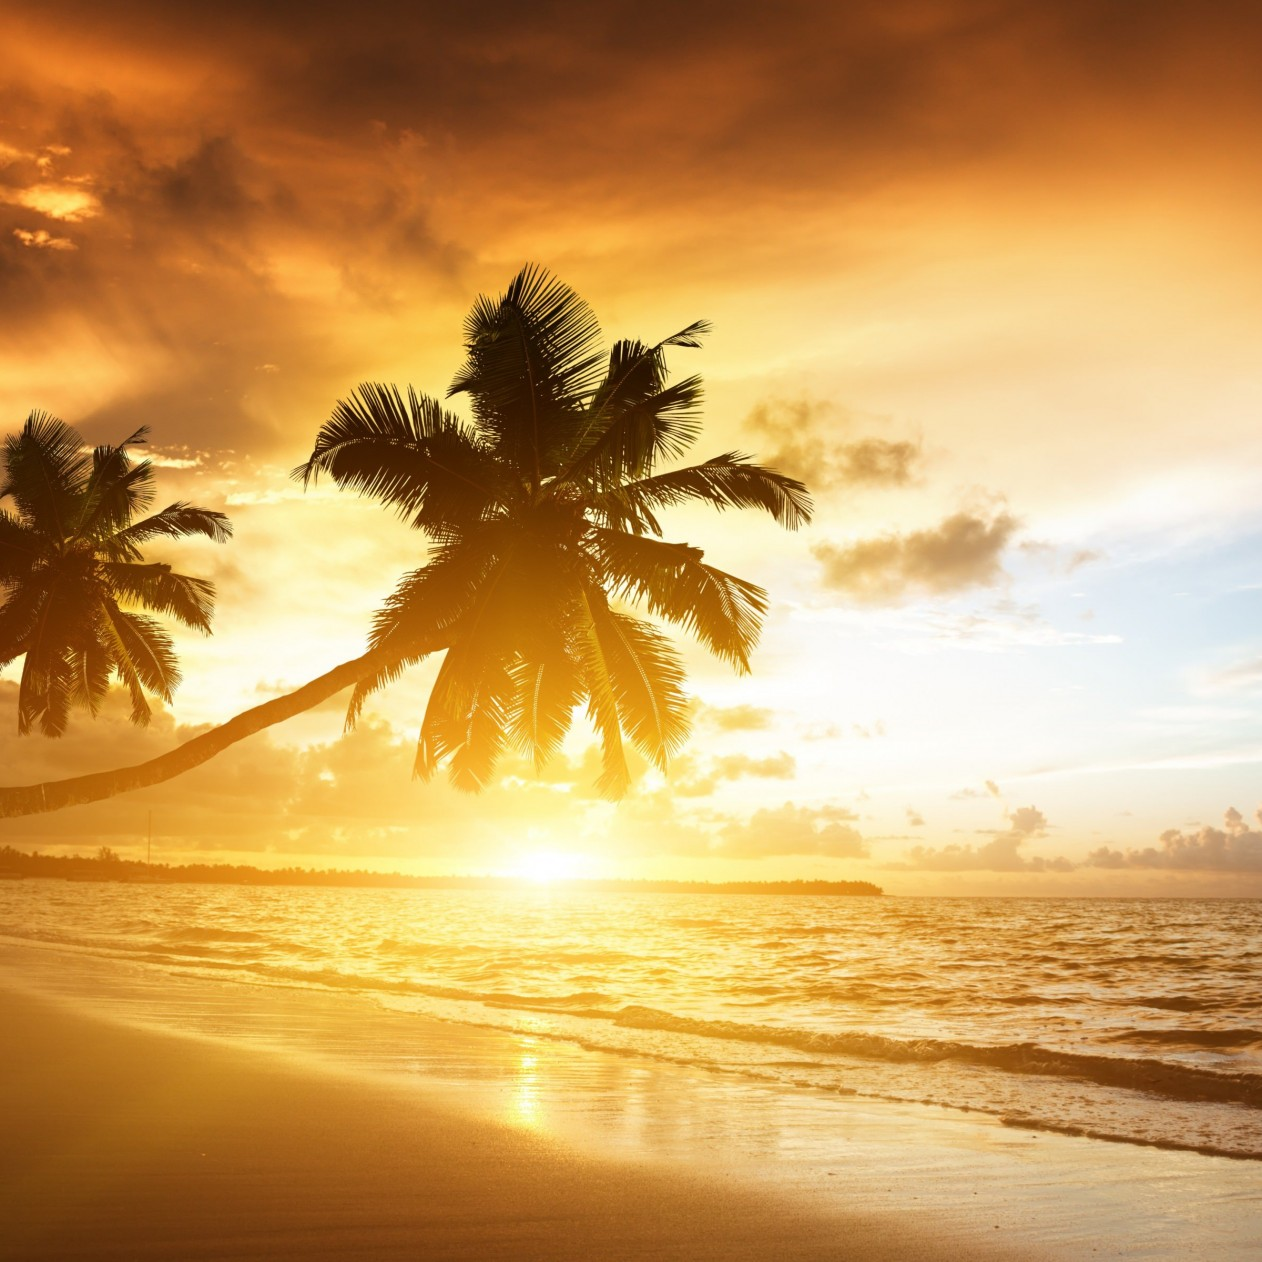 Beach With Palm Trees At Sunset Wallpaper for Apple iPad mini